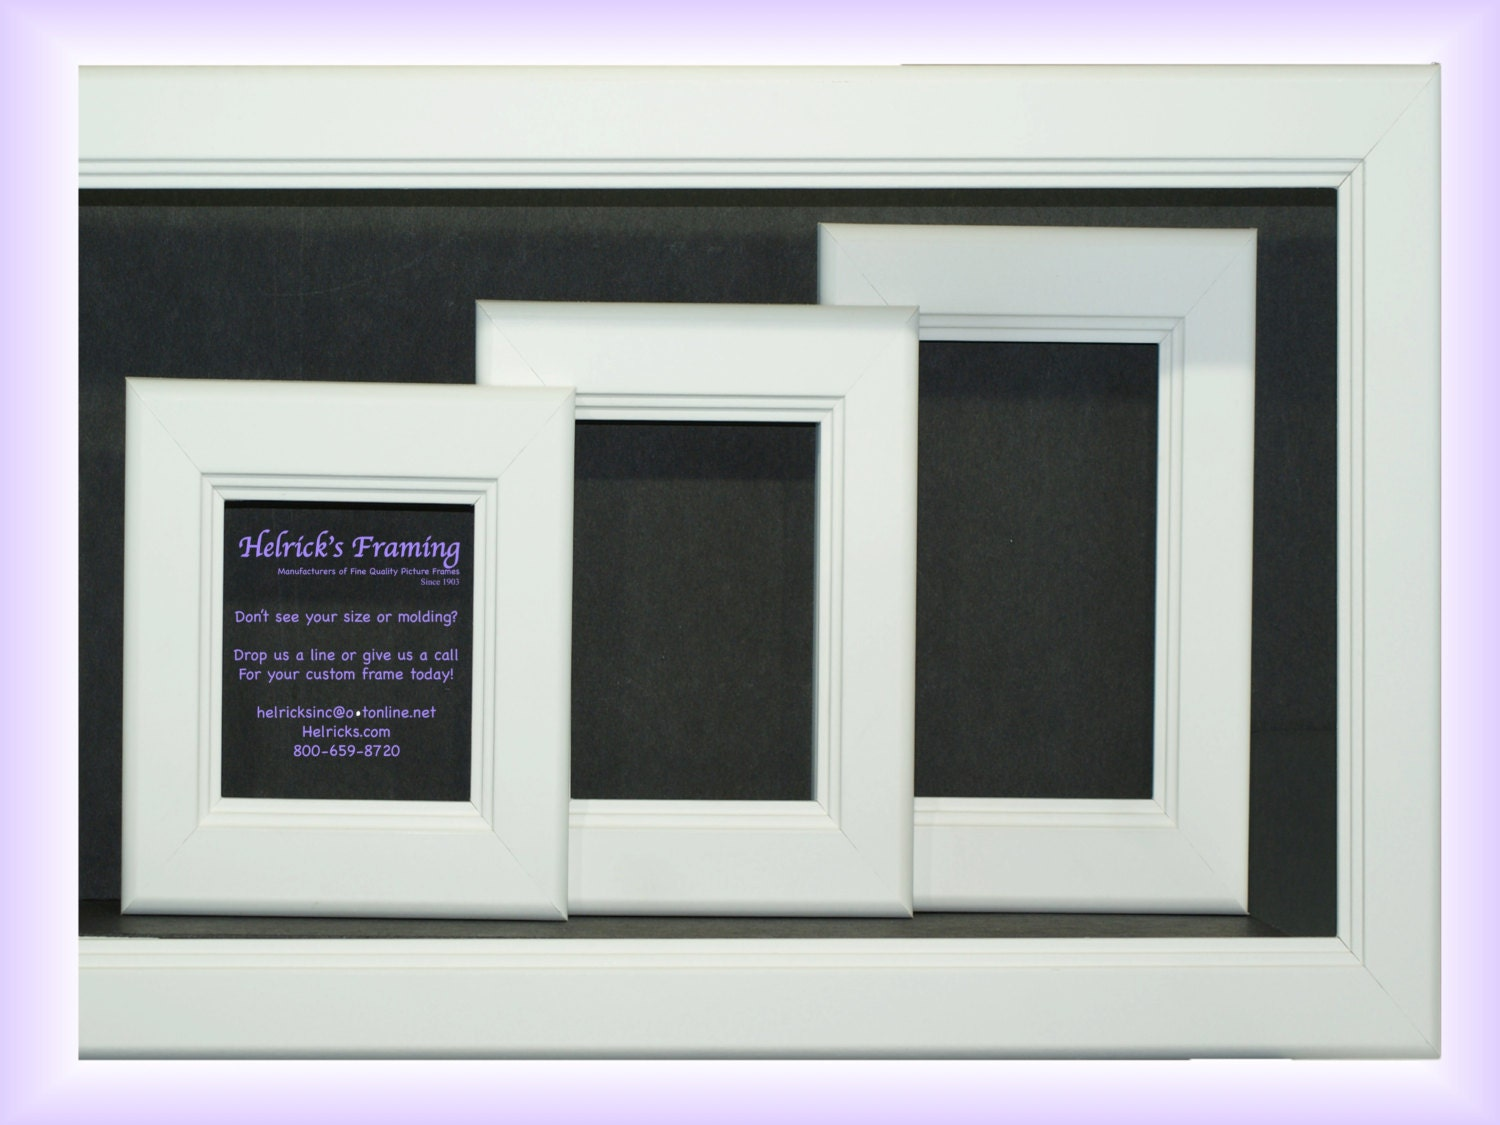 custom white picture frames from 4x4 square 6x6 8x8 10x10 10x20 10x30 10x40 10x50 12x12 14x14 16x16 18x18 20x30 custom sizes availableb13